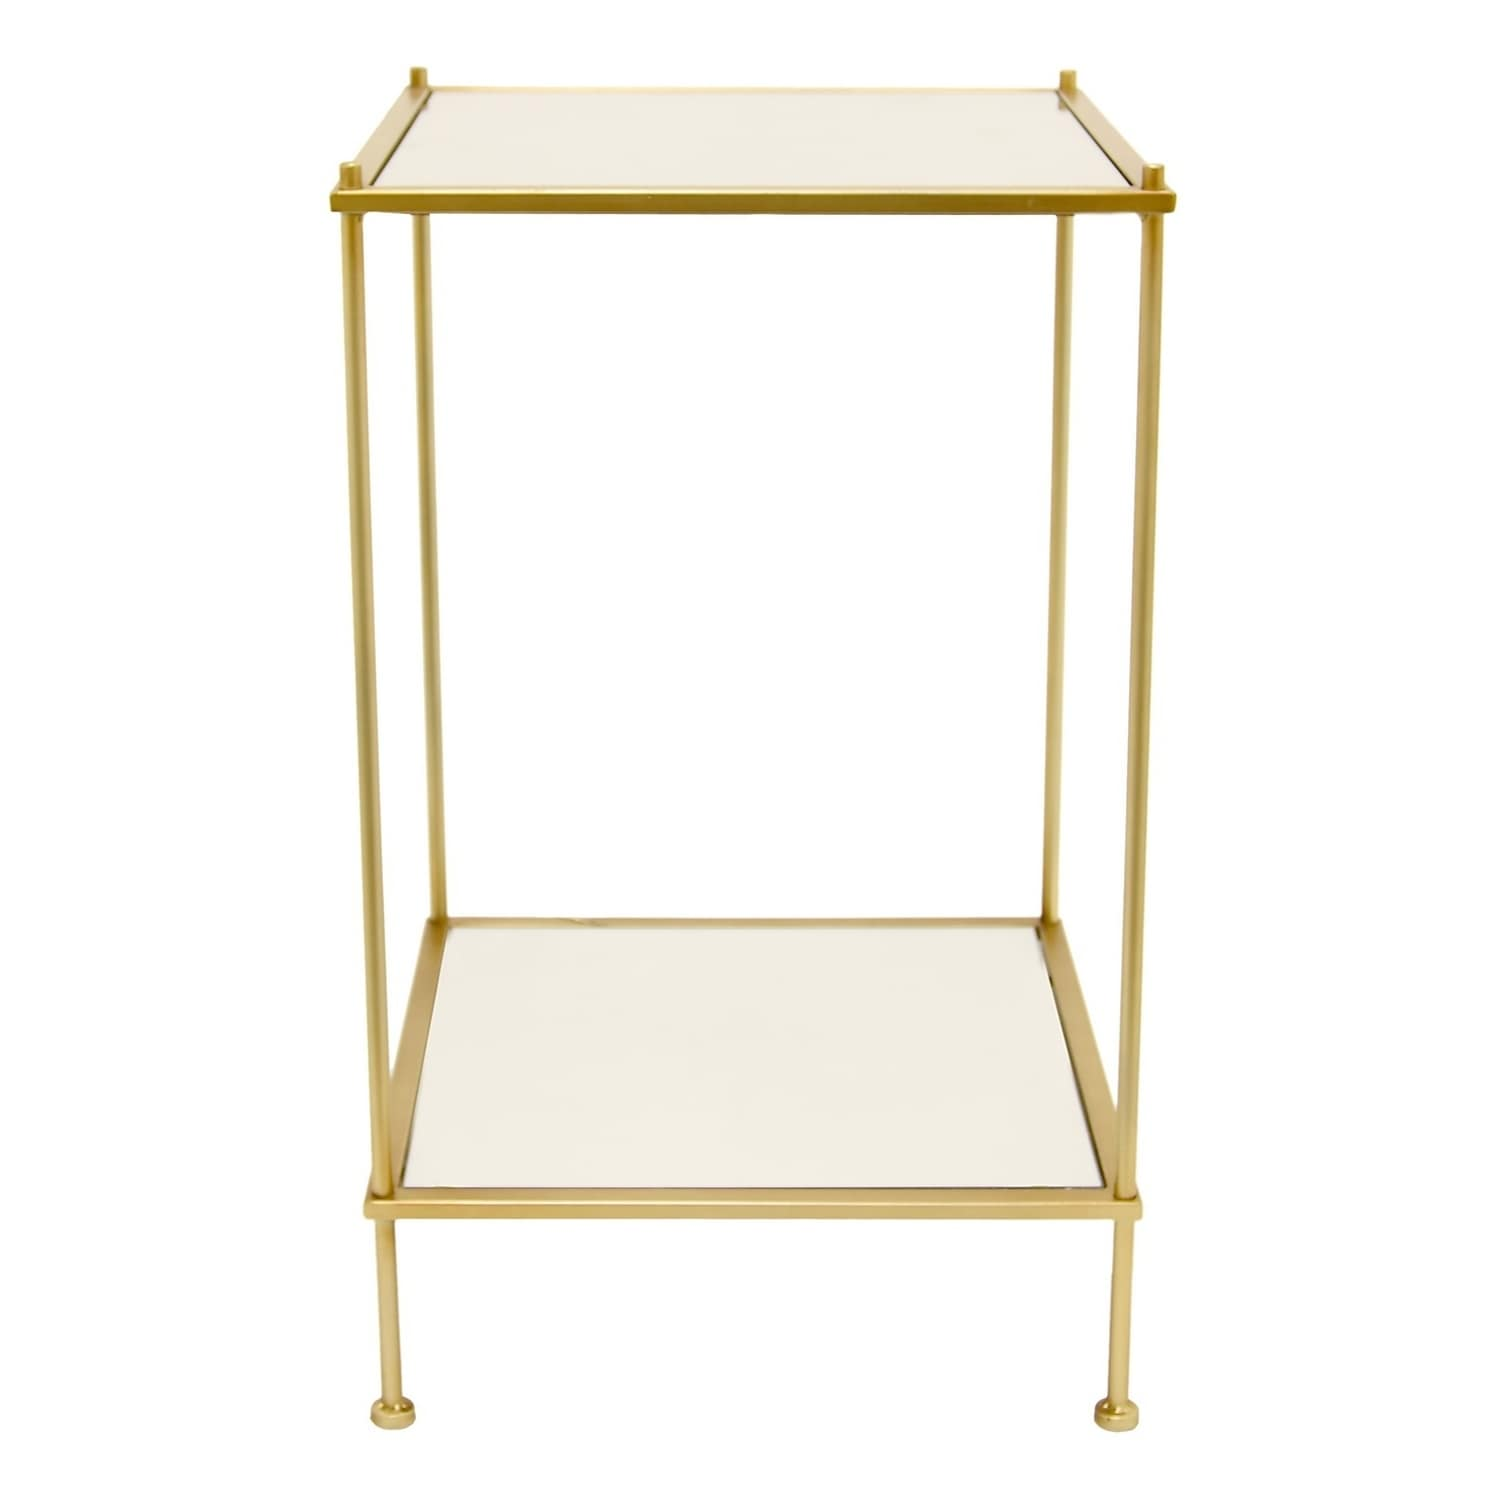 Three Hands Decorative Mirror Side Table With Gold Metal Base